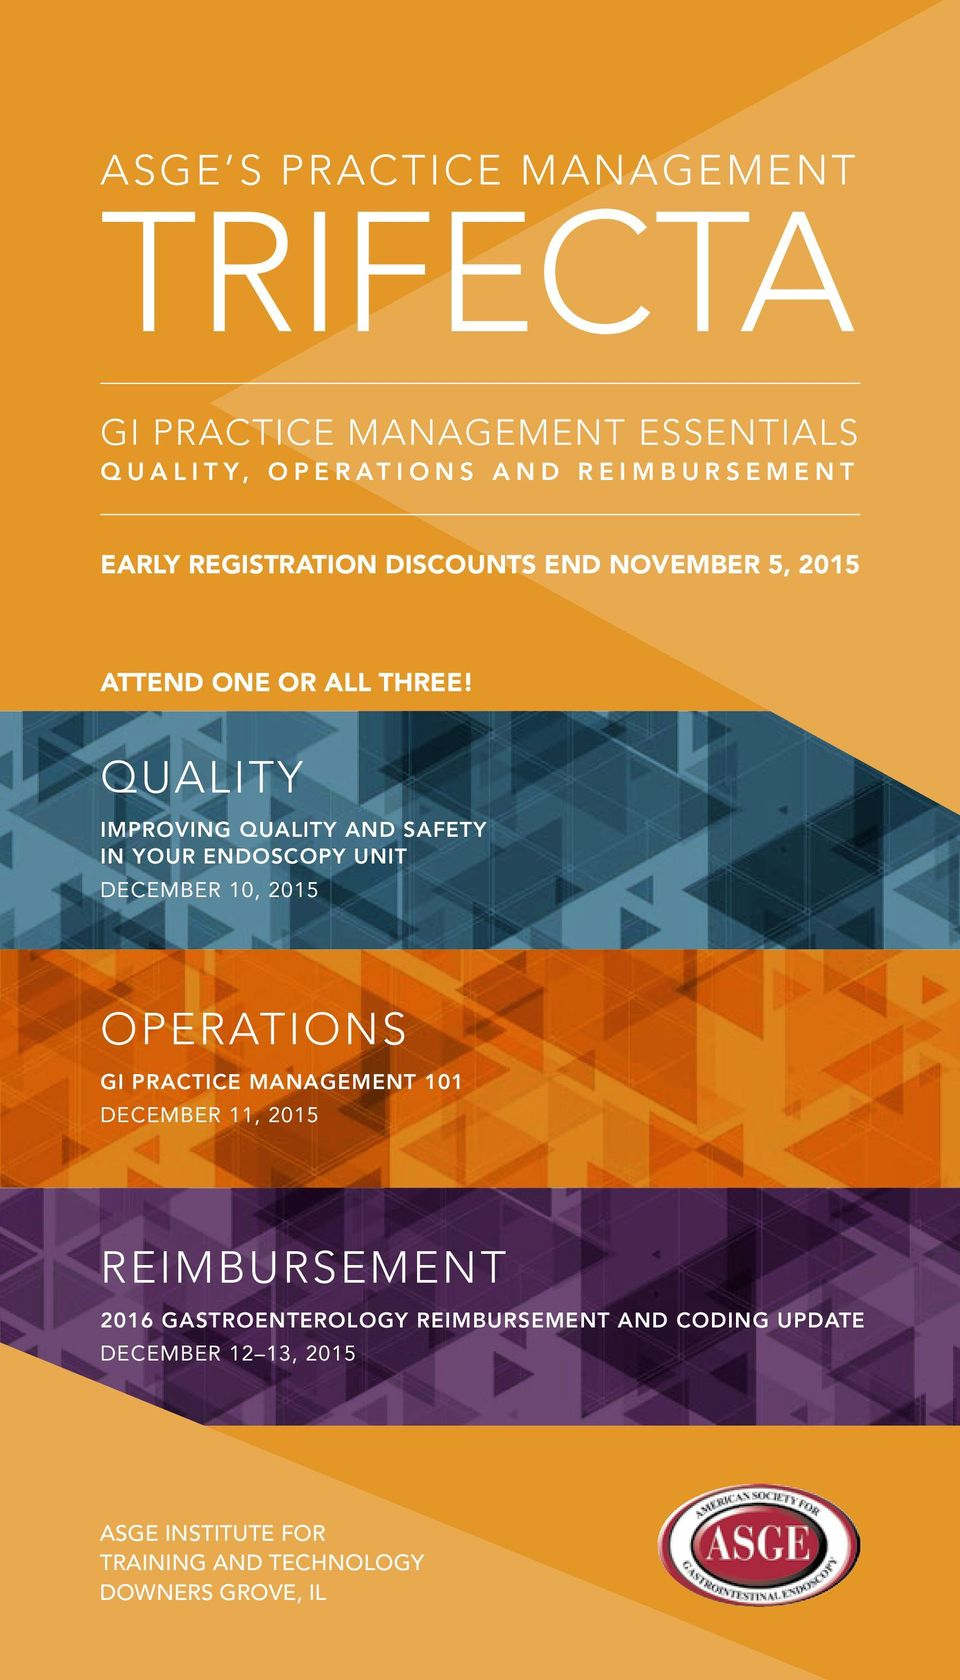 QUALITY IMPROVING QUALITY AND SAFETY IN YOUR ENDOSCOPY UNIT DECEMBER 10, 2015 OPERATIONS GI PRACTICE MANAGEMENT 101